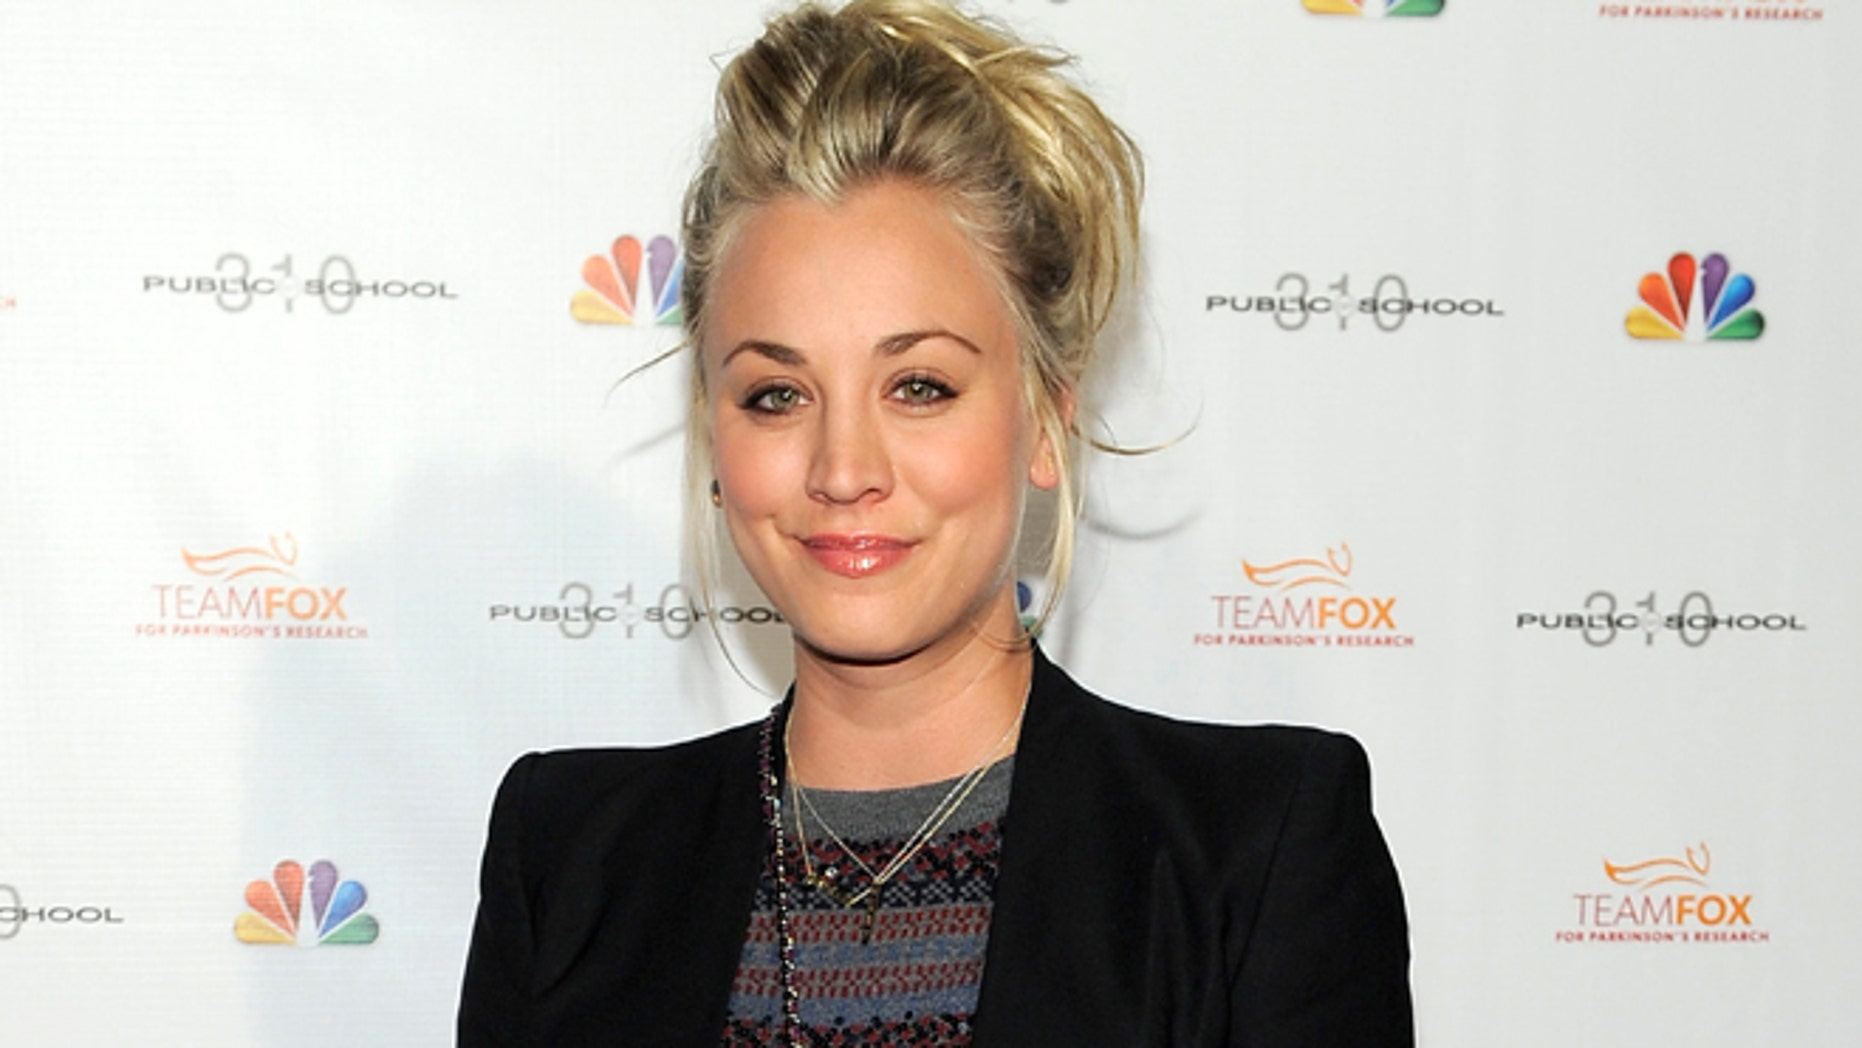 Dec. 5, 2012: This file photo shows actress Kaley Cuoco at the Raising the Bar to End Parkinsons fundraising event at Public School 310 in Culver City, Calif.